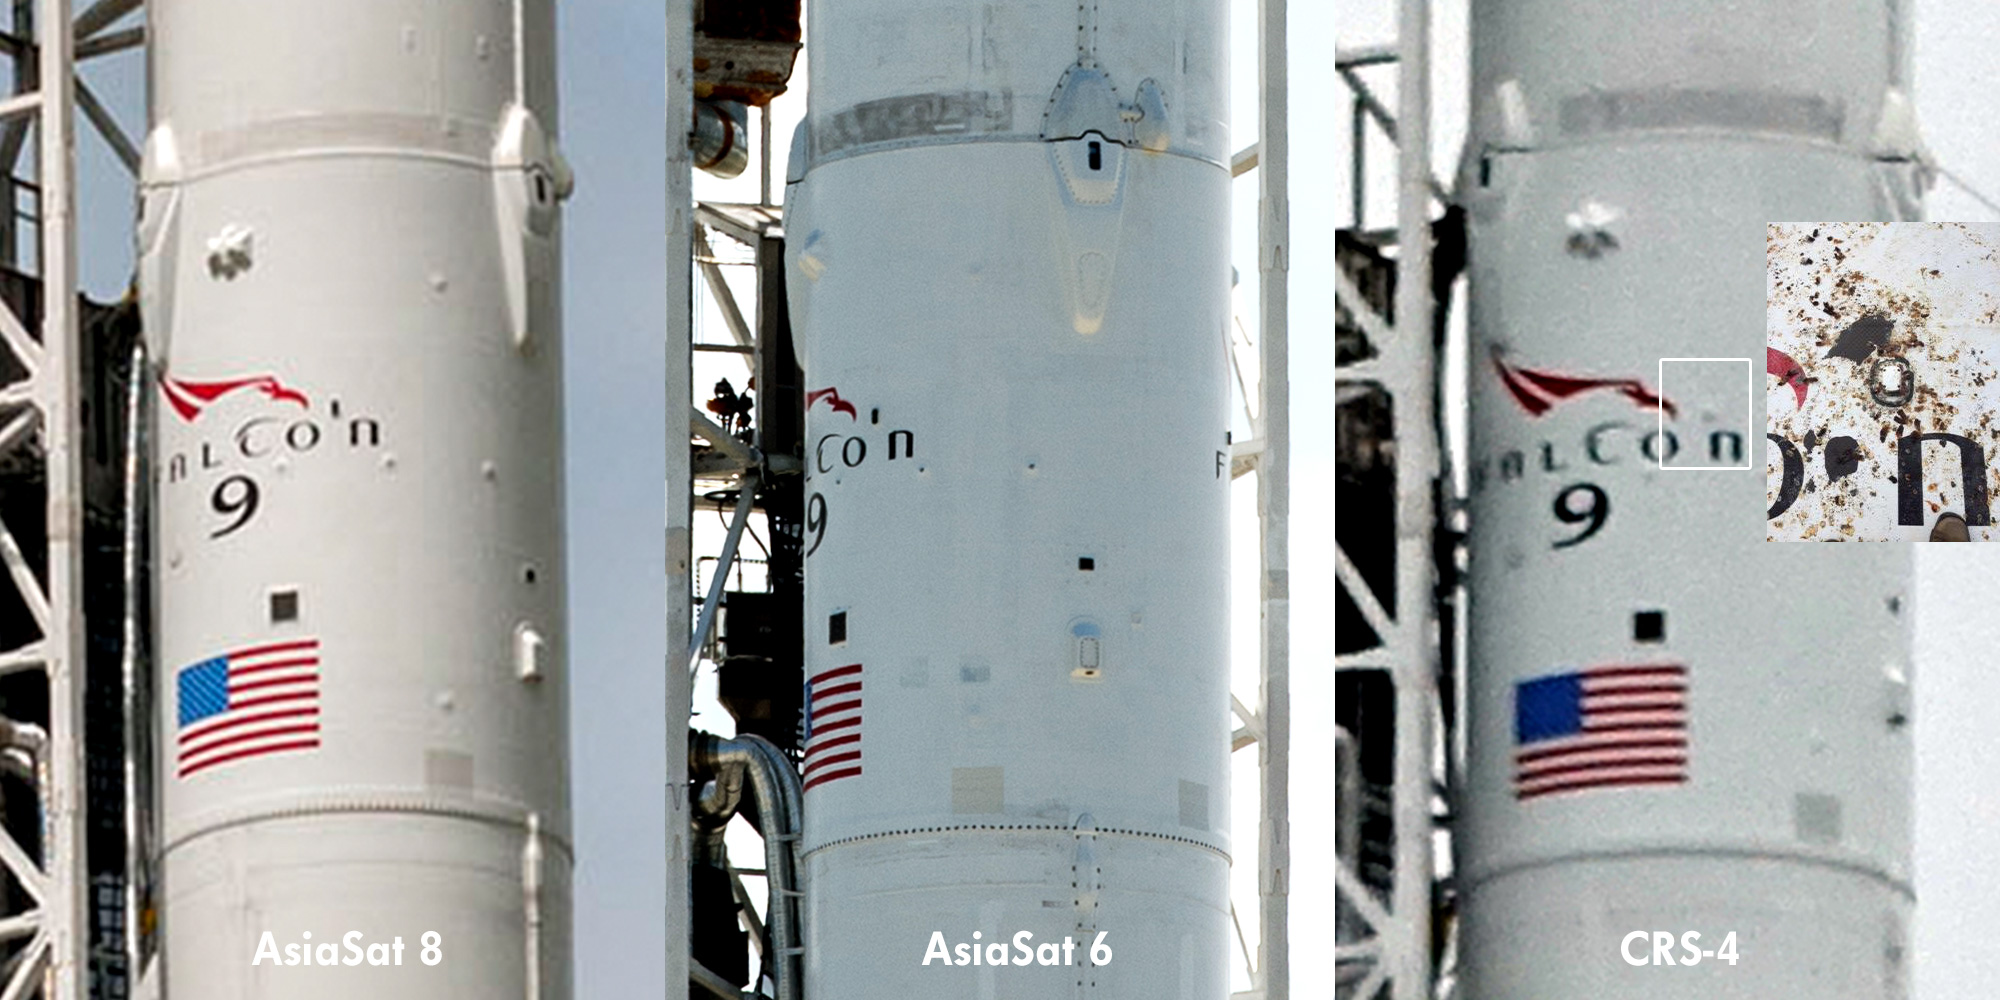 CRS-4 SpaceX Falcon 9